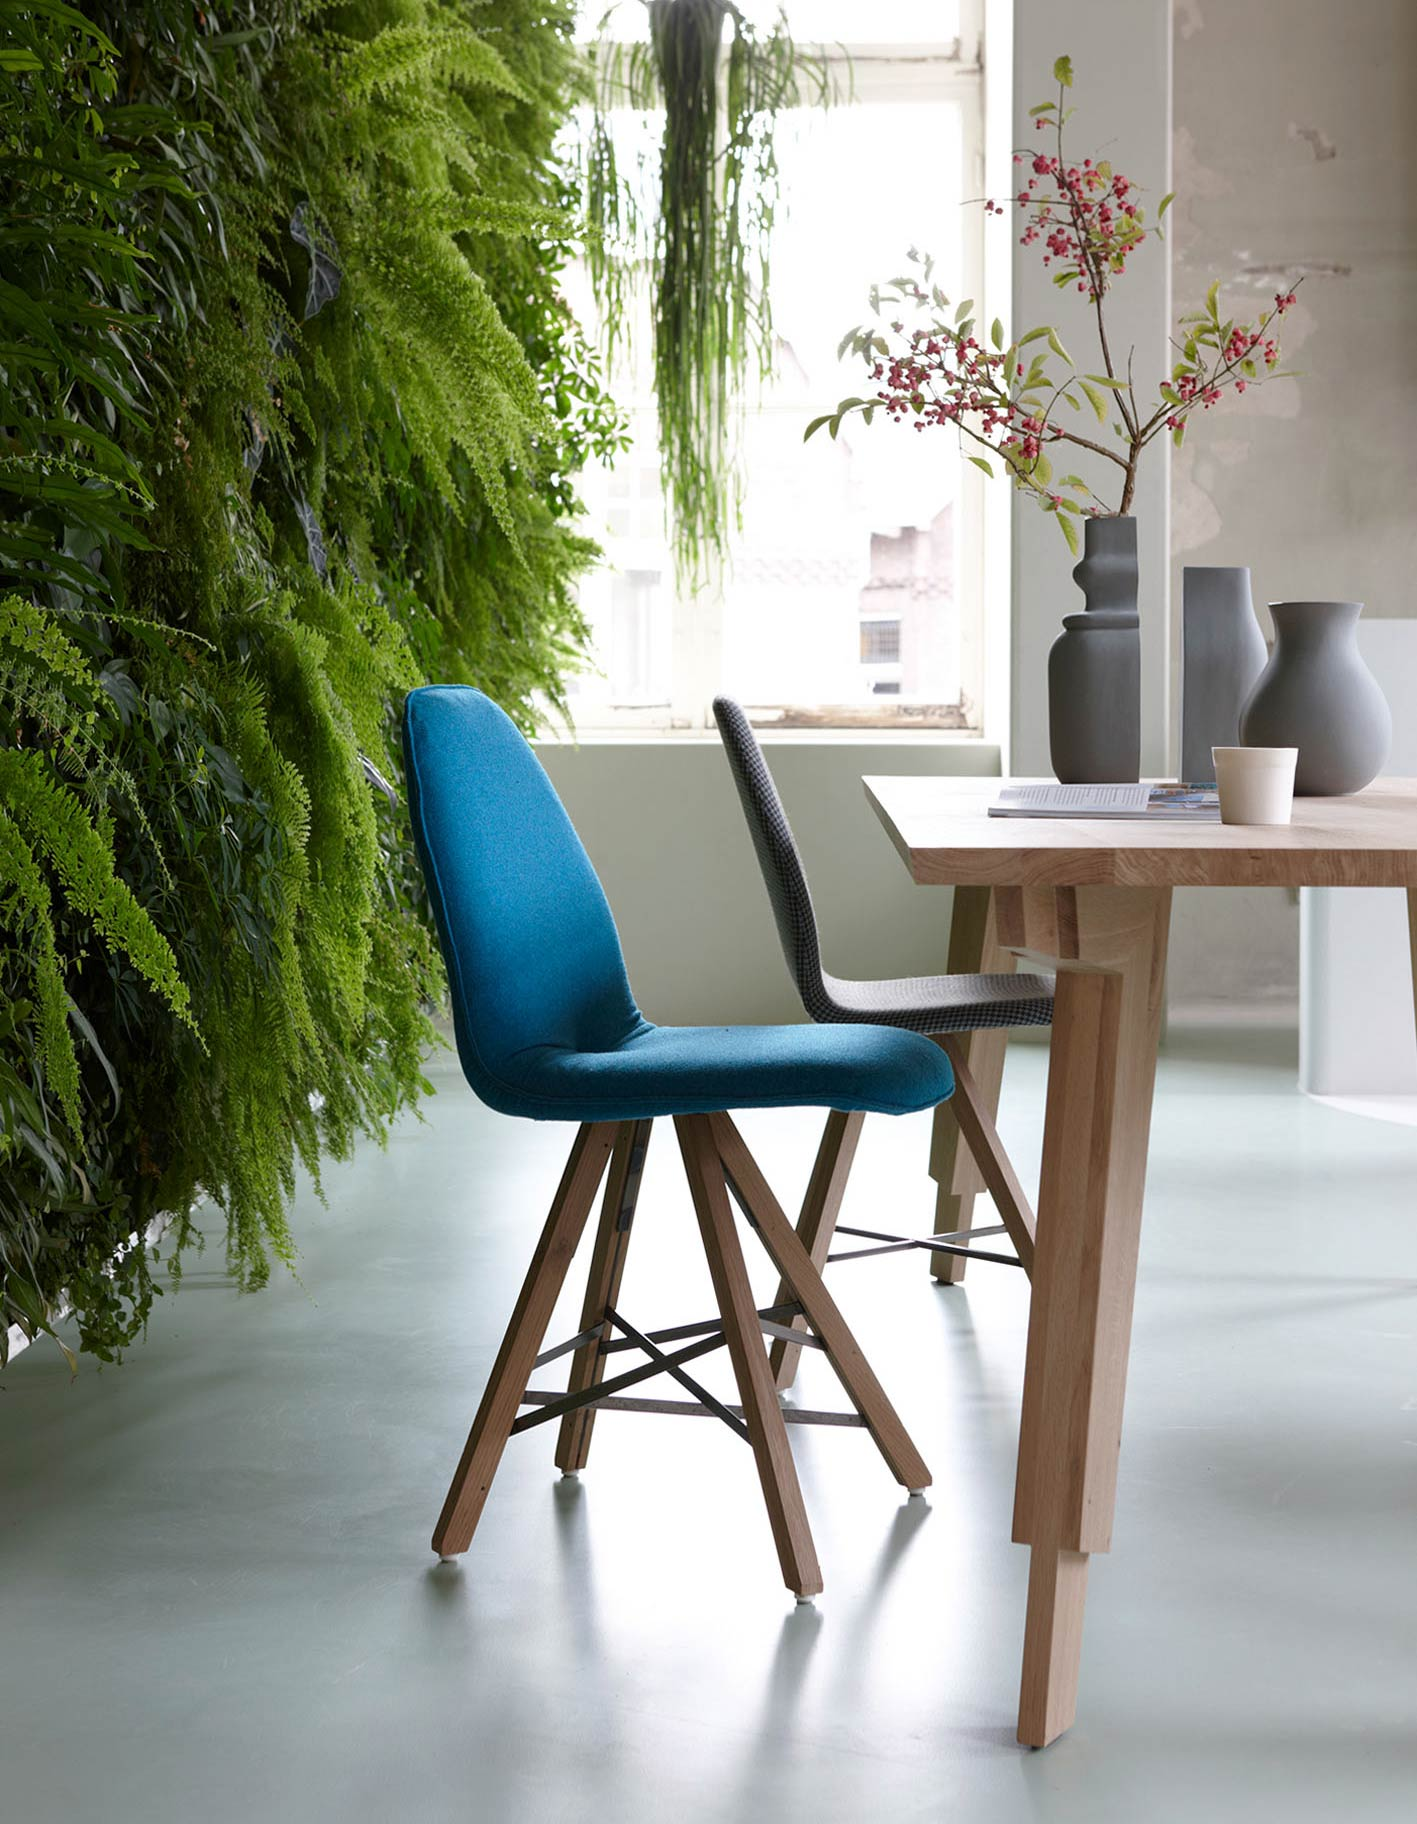 swan_table_setting_spoinq_green